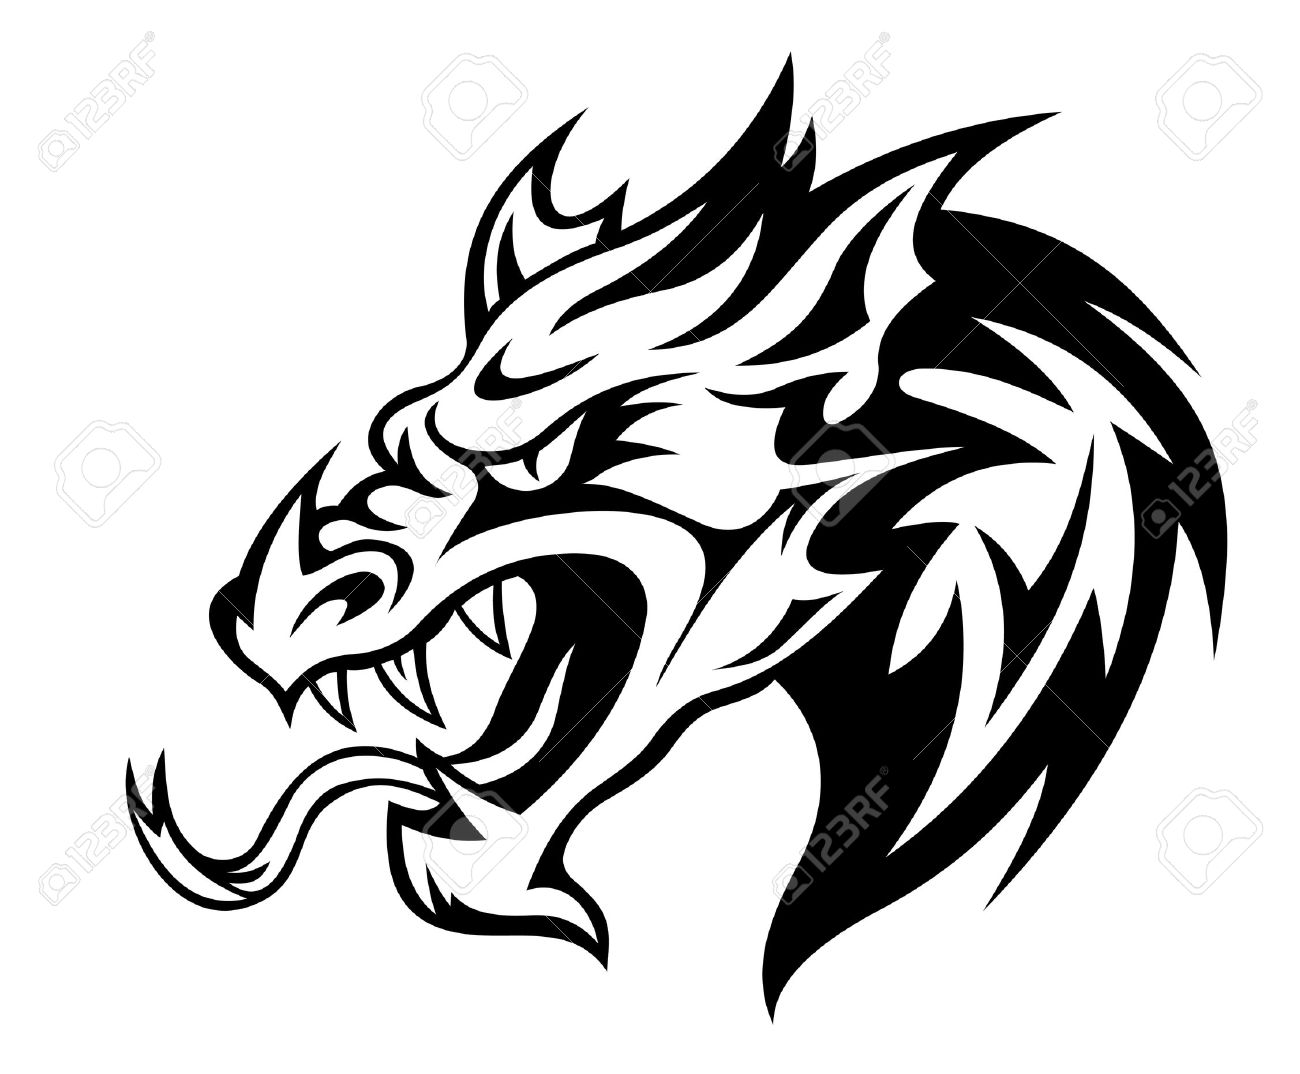 Black And White Dragon Drawing At Getdrawings Com Free For